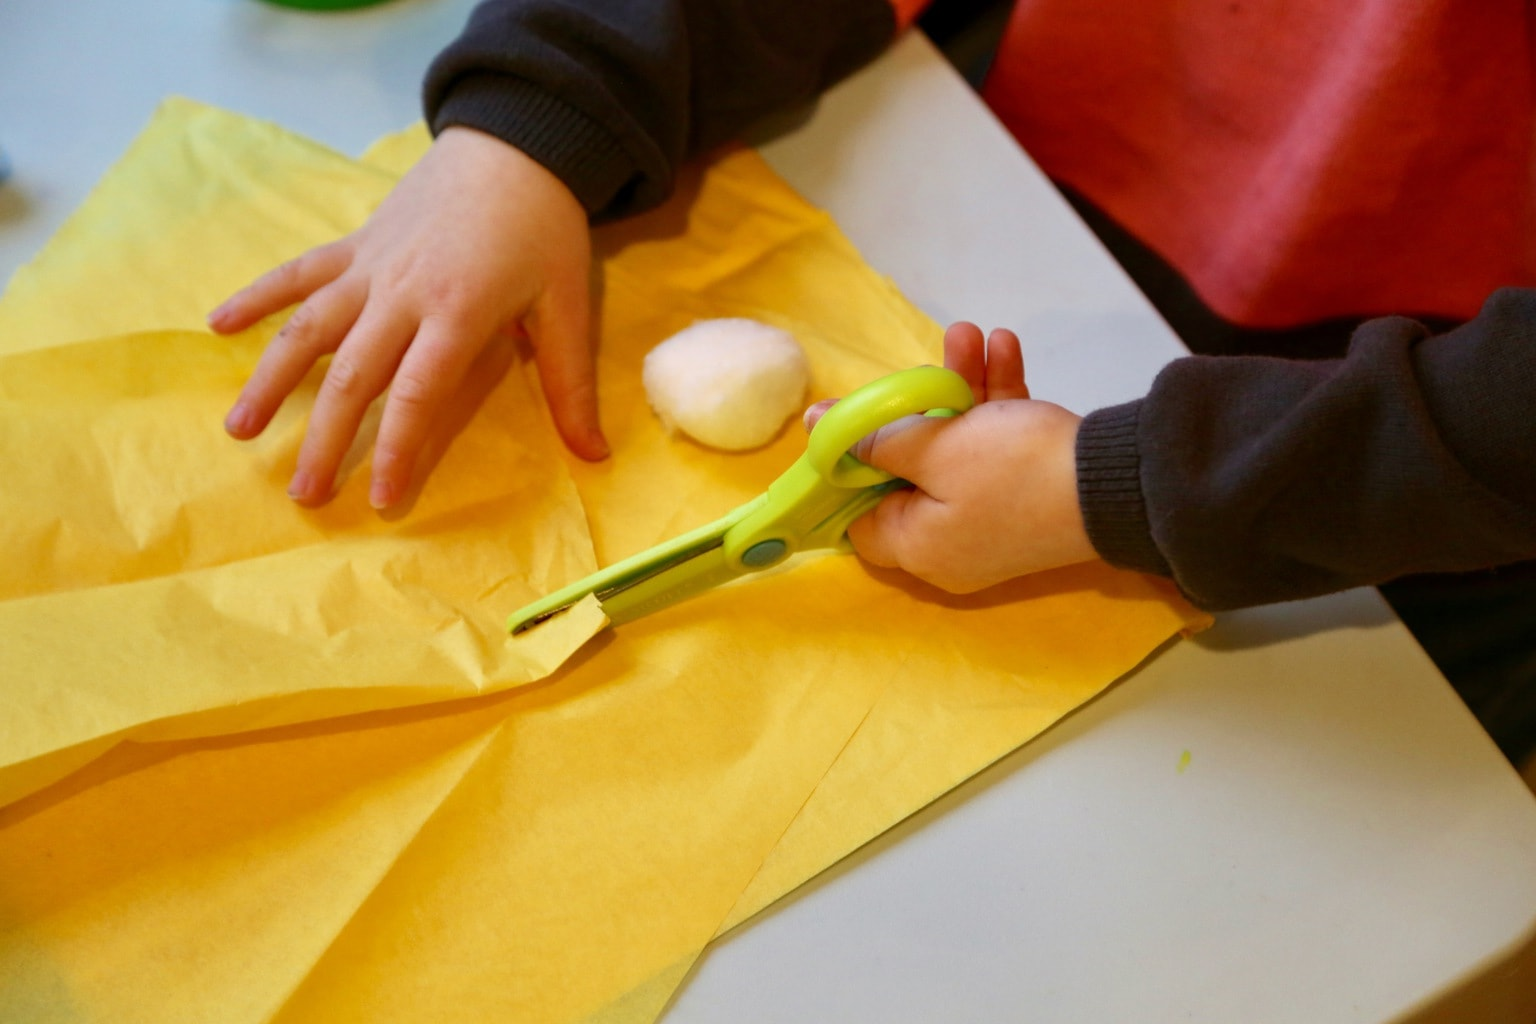 Child cutting yellow tissue paper for play food tortellini